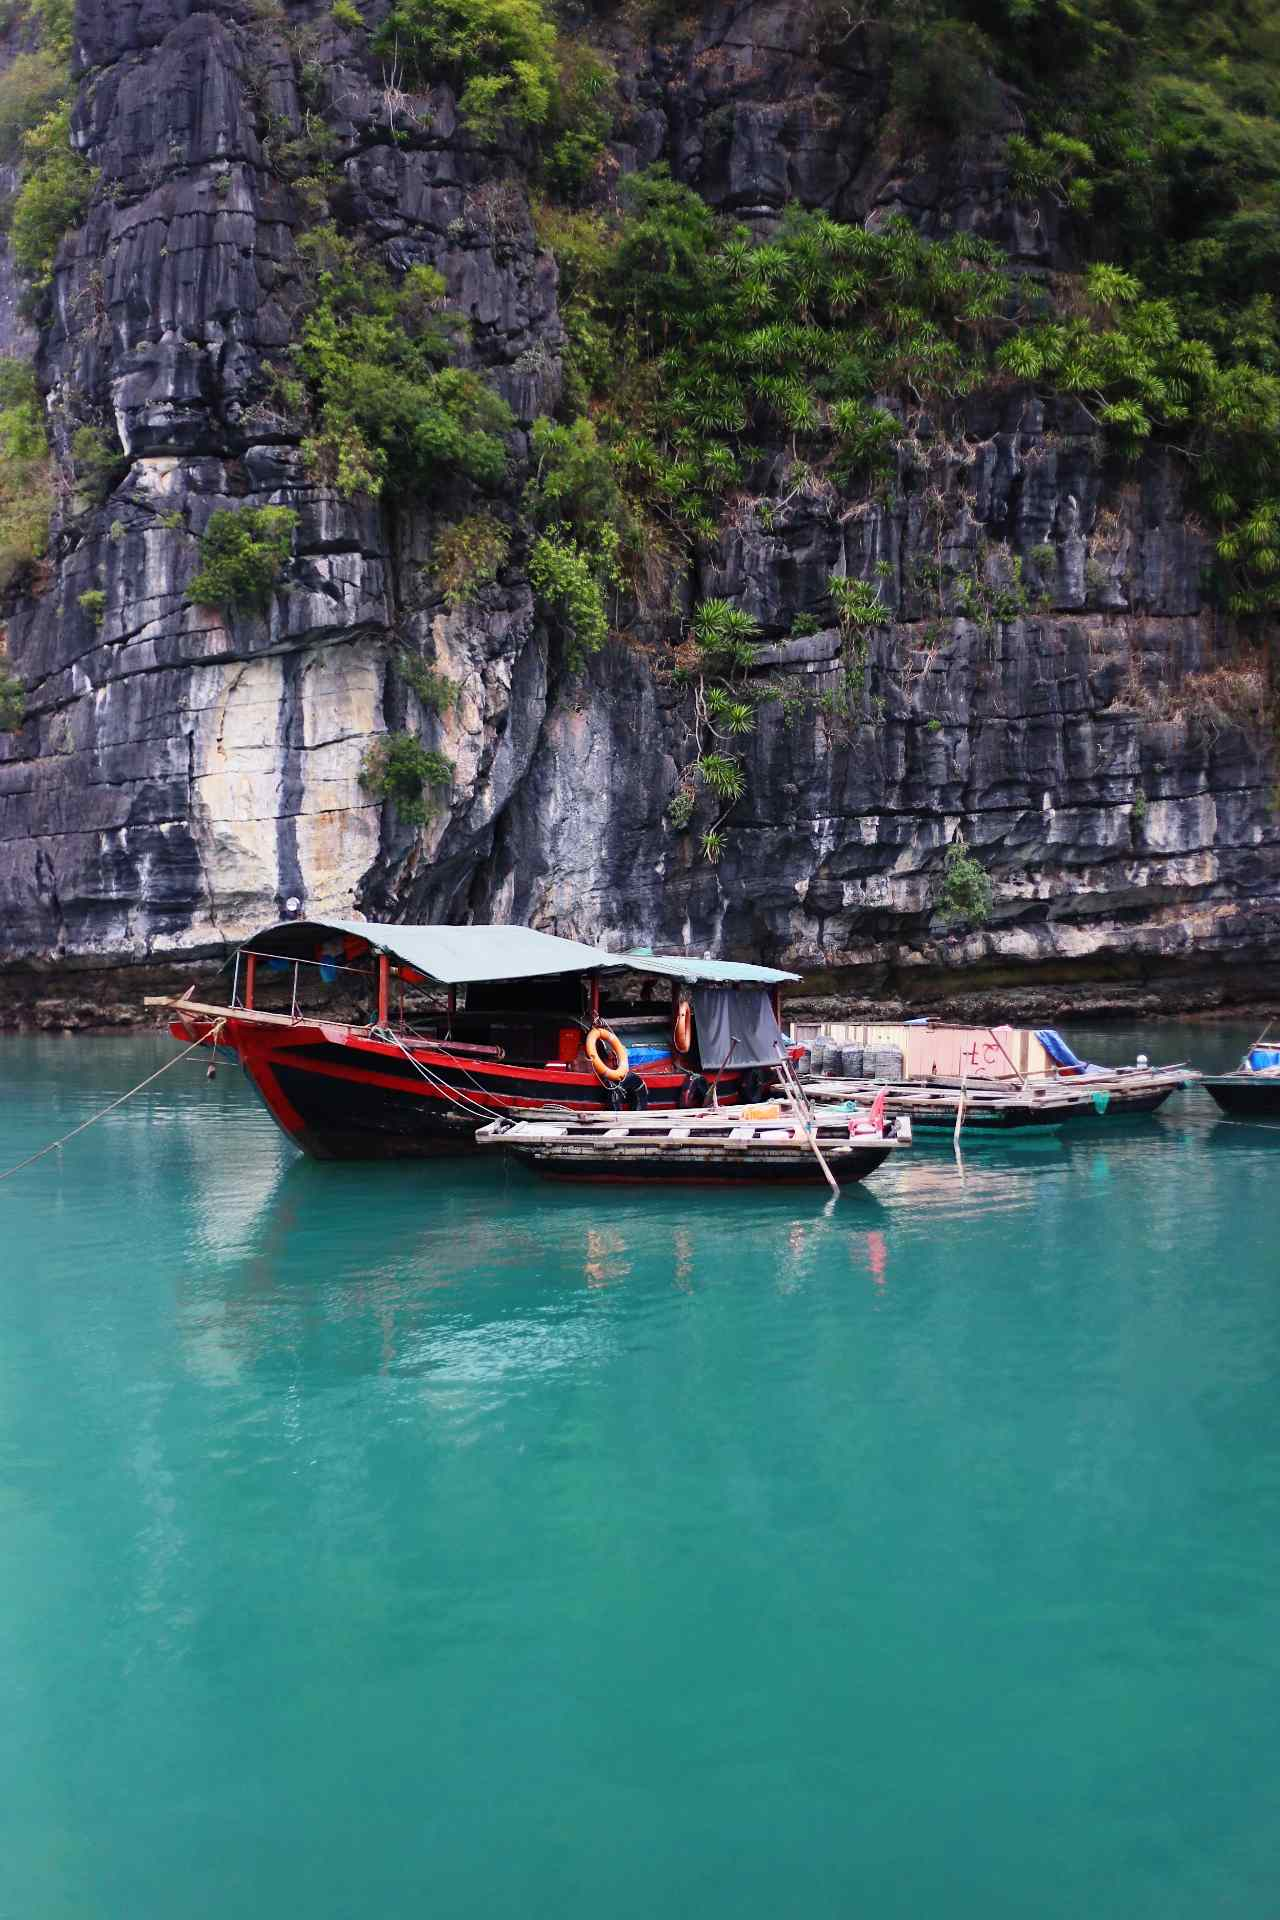 Halong seafood - Things to buy in Ha Long